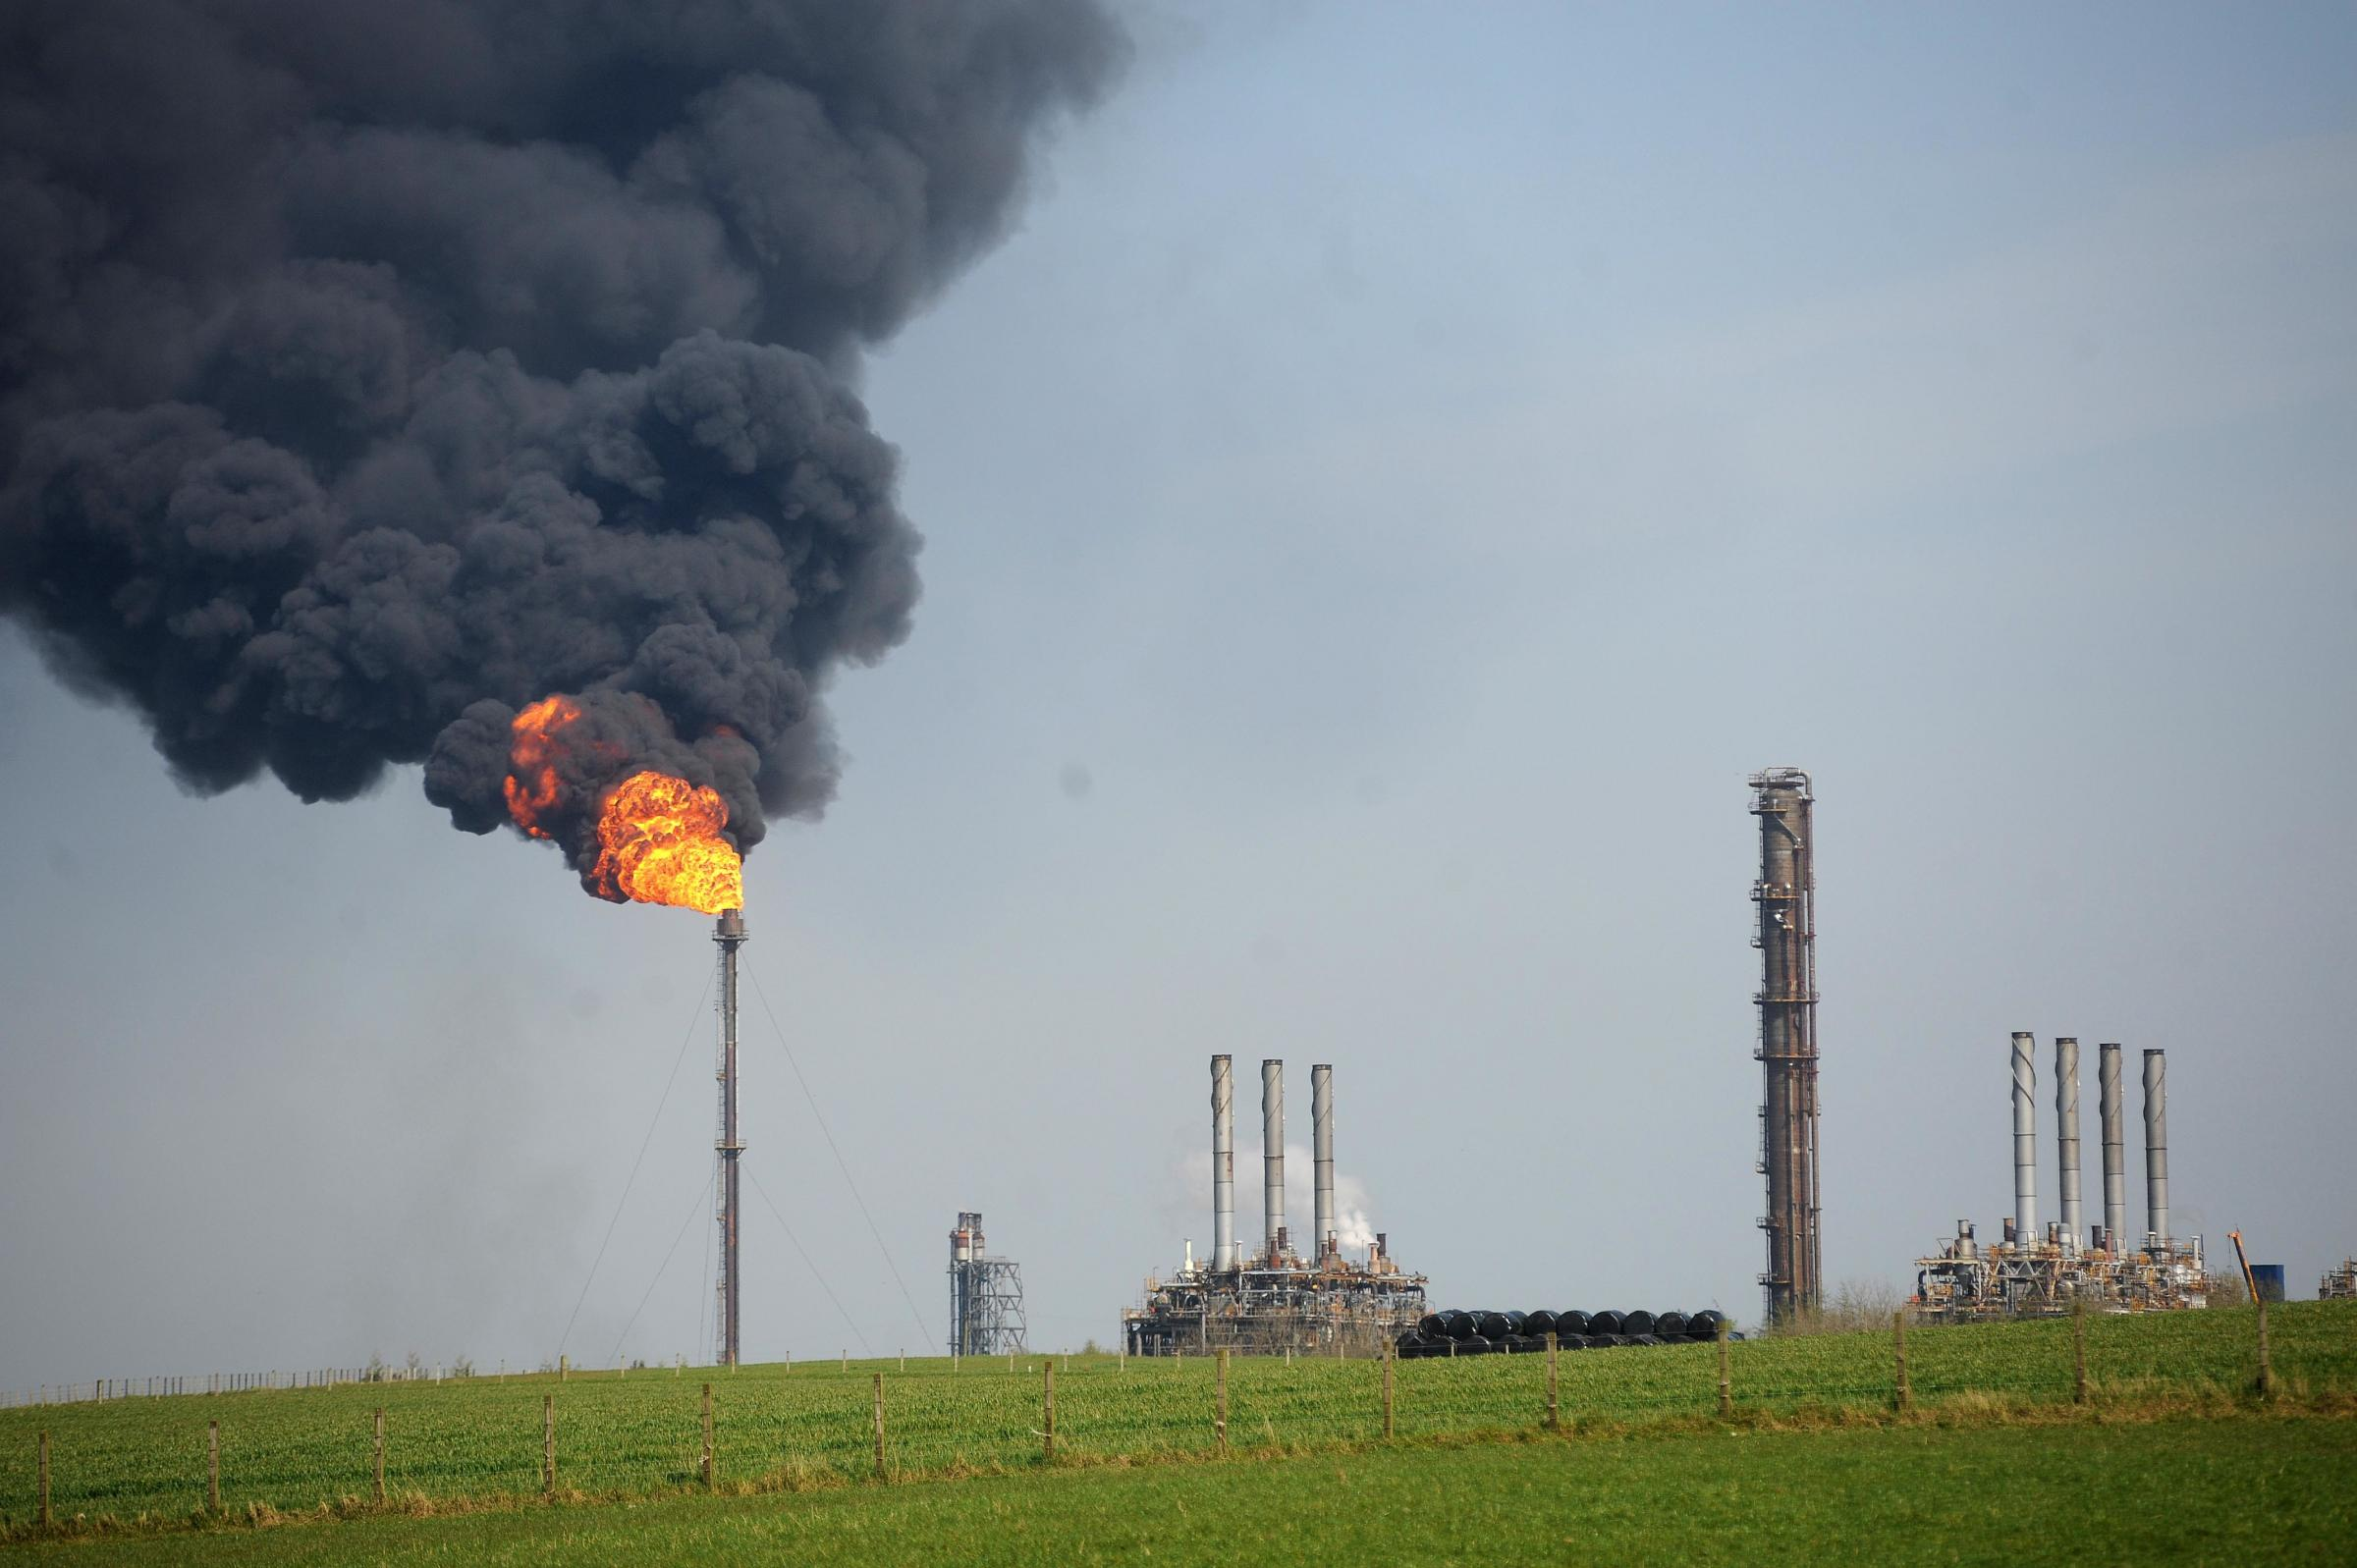 Mossmorran flaring emissions 'as bad as flying 9000 people to New York'